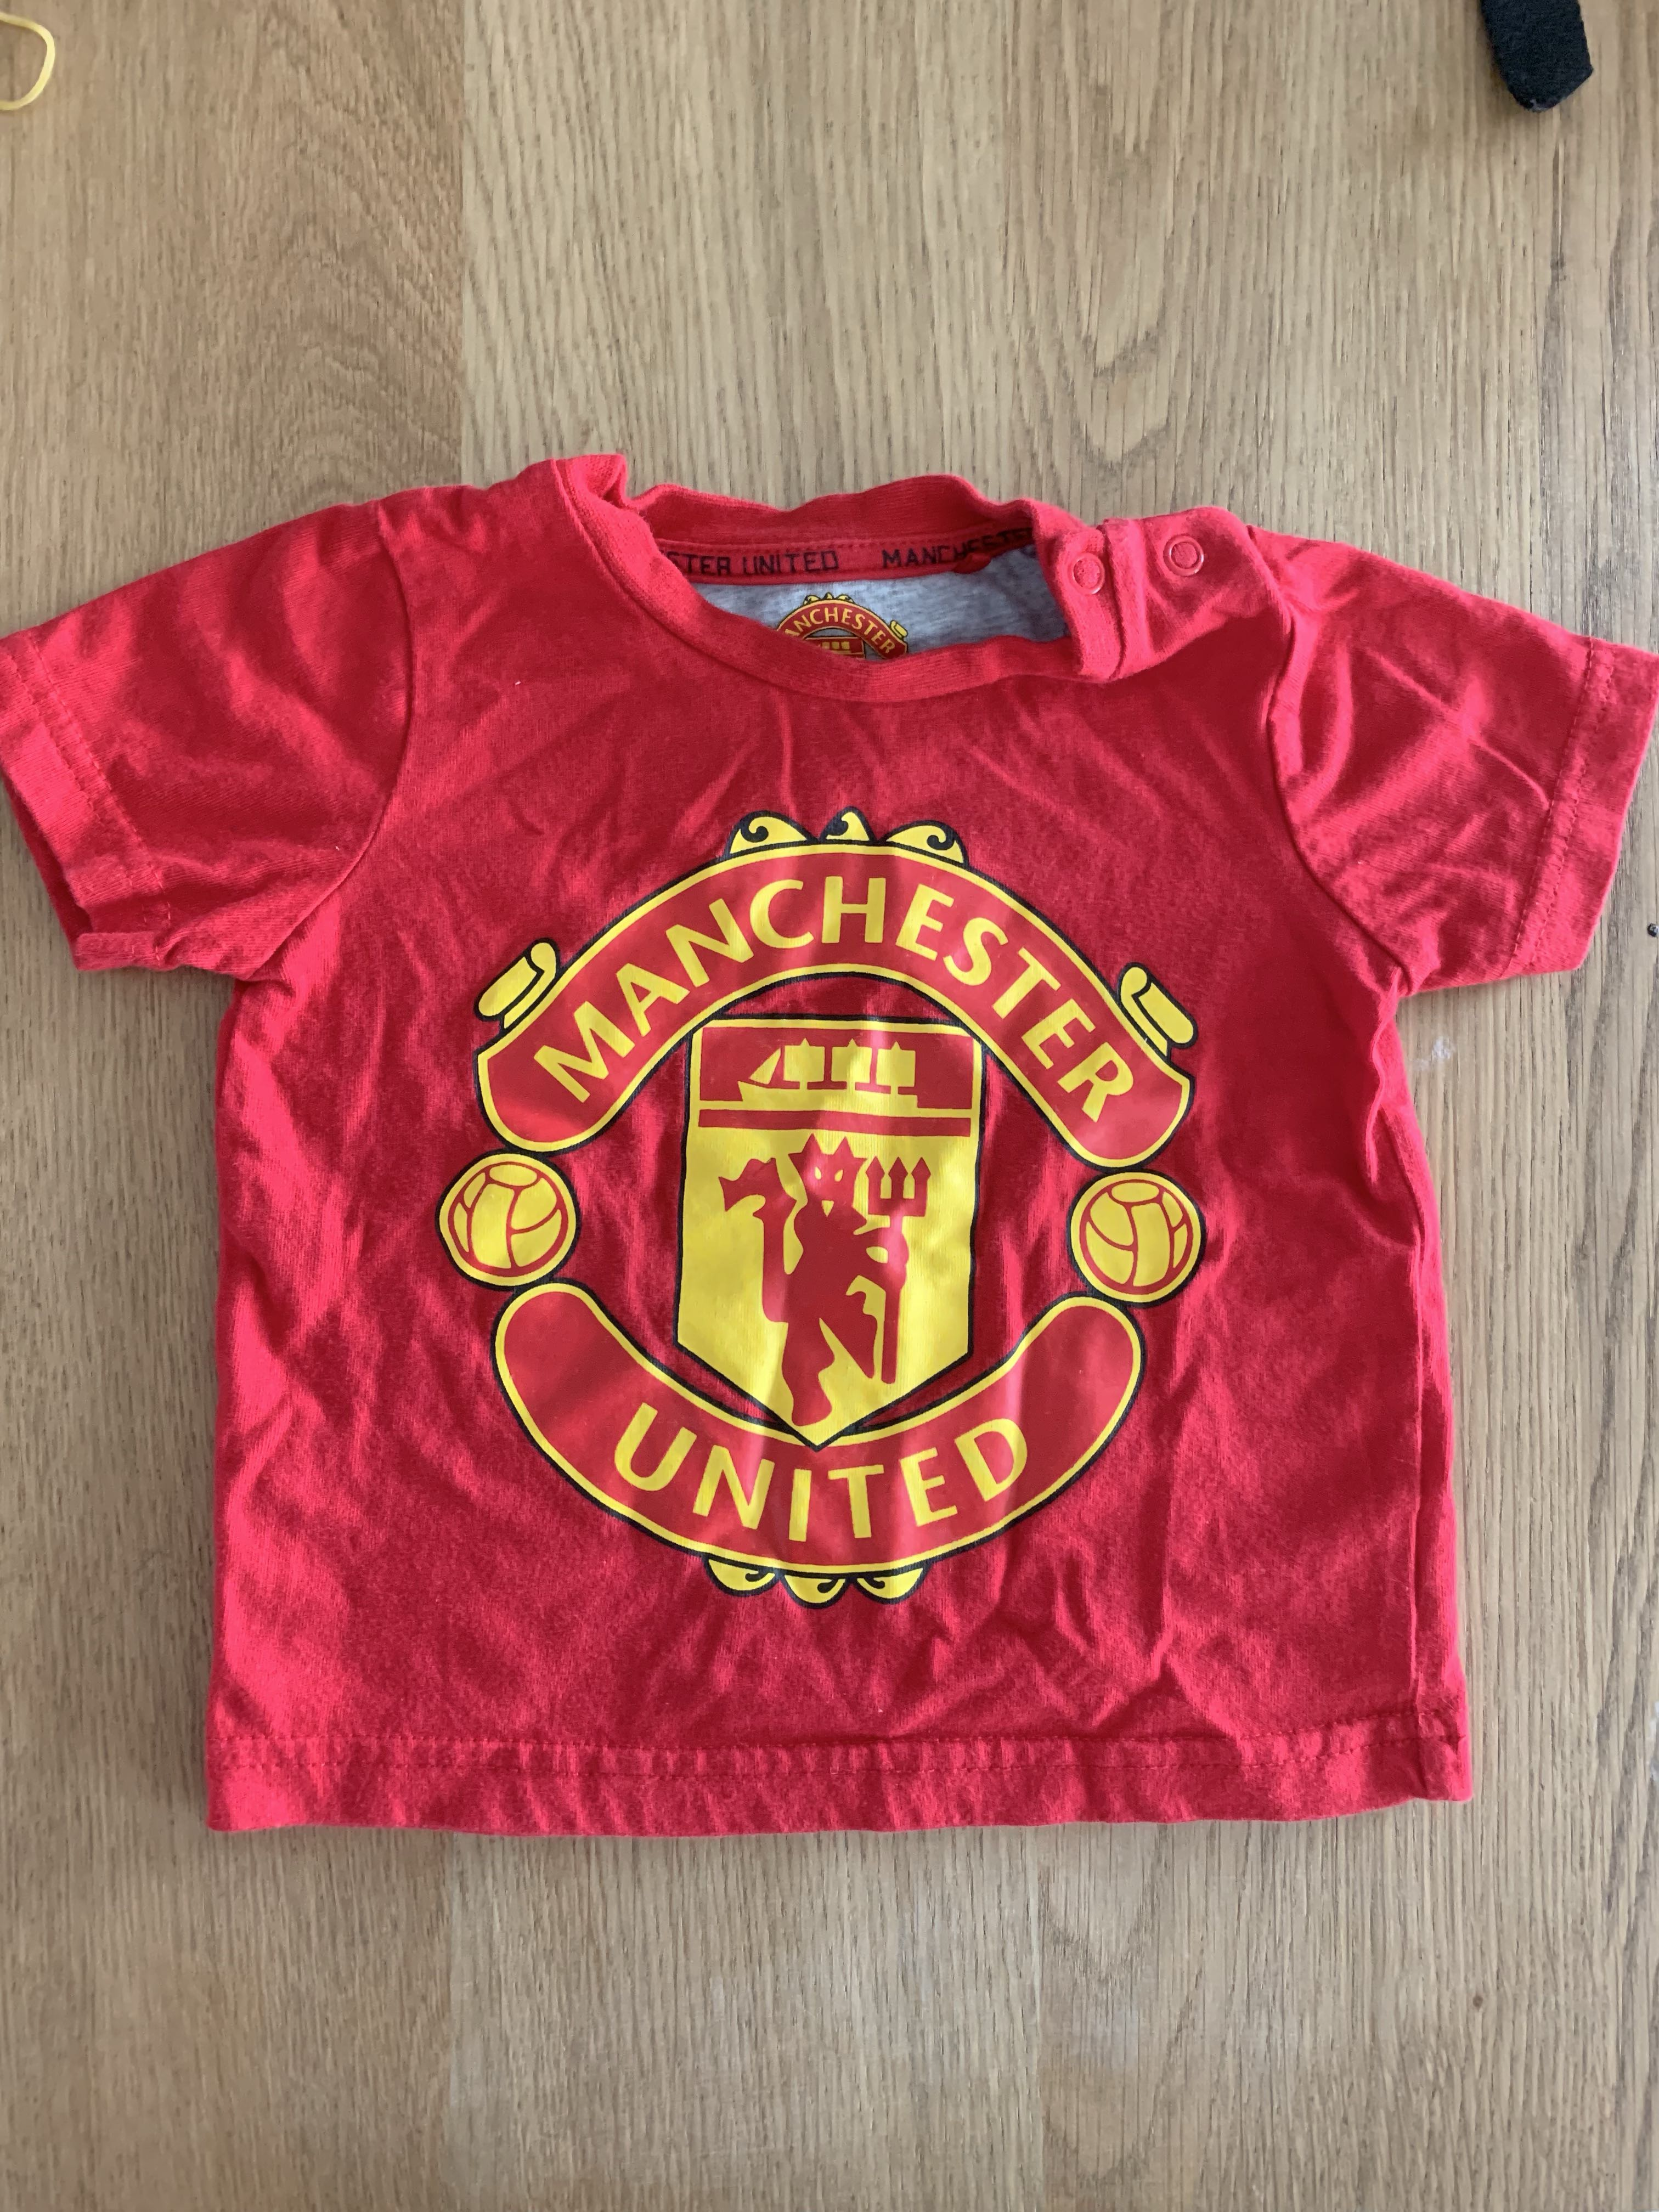 finest selection 87a66 c7e0b Manchester United baby kids t shirt, Babies & Kids, Babies ...